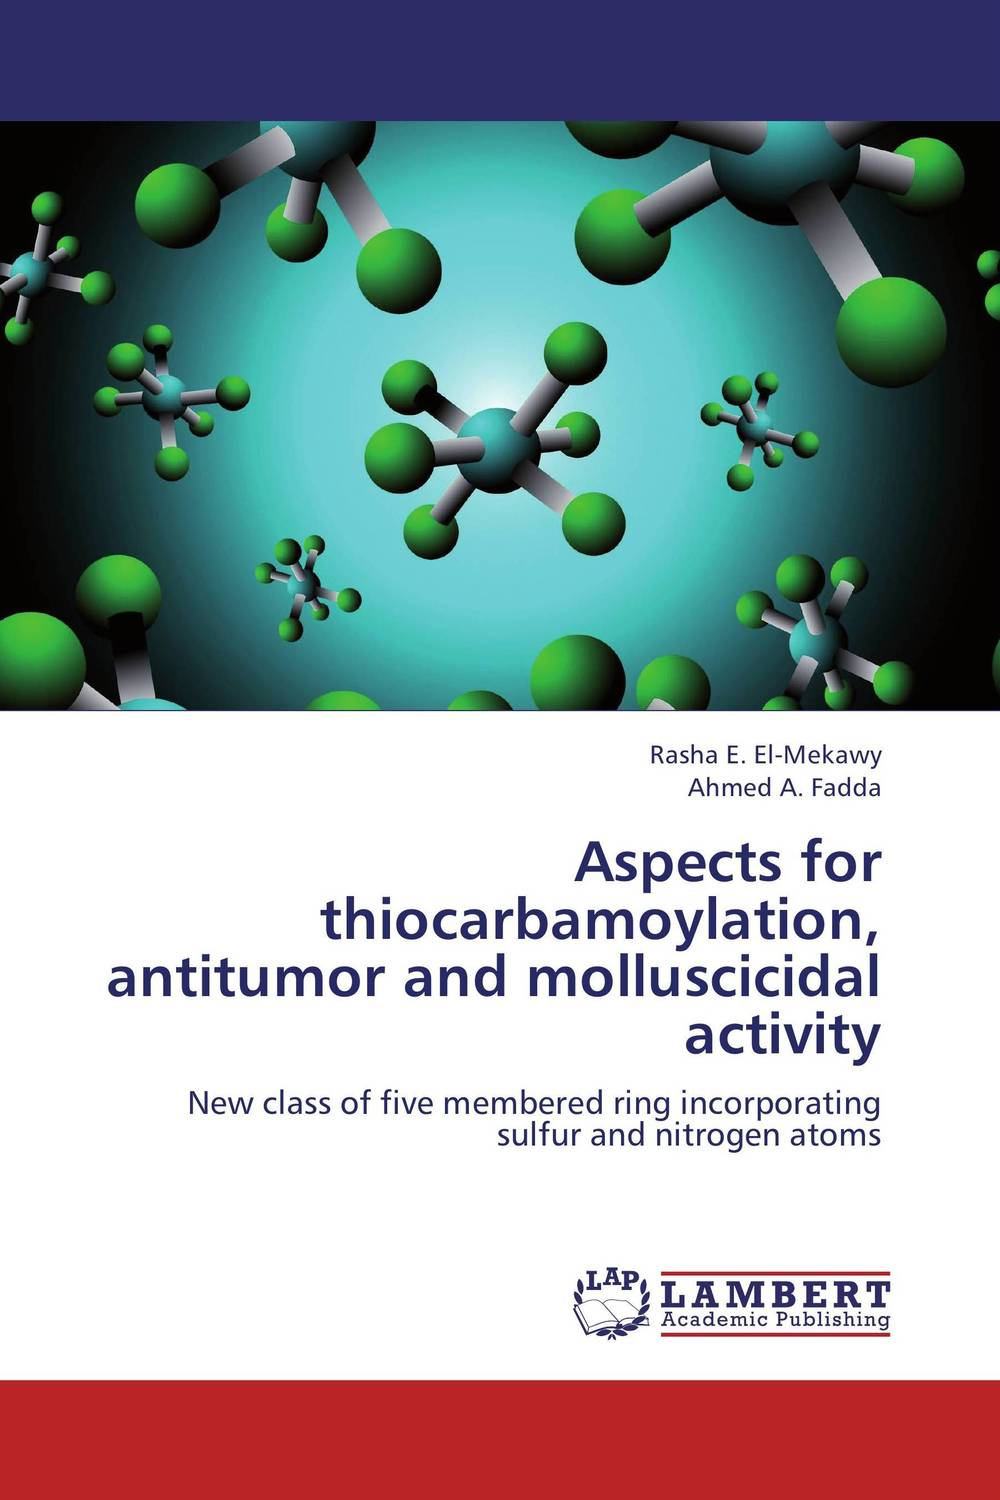 Aspects for thiocarbamoylation, antitumor and molluscicidal activity antitumor activity of mussaenda philippica in colon and breast cancer